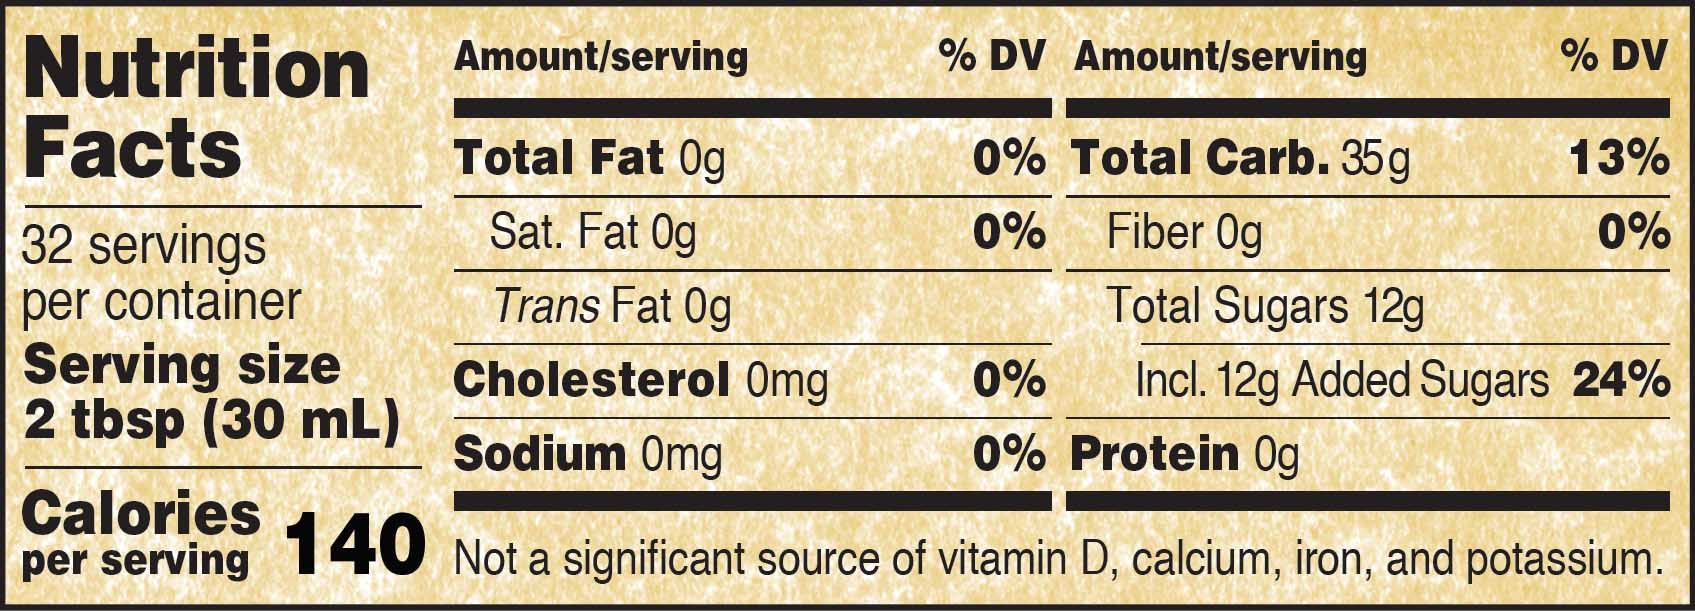 Nutritional Panel for Golden Barrel Corn Syrup